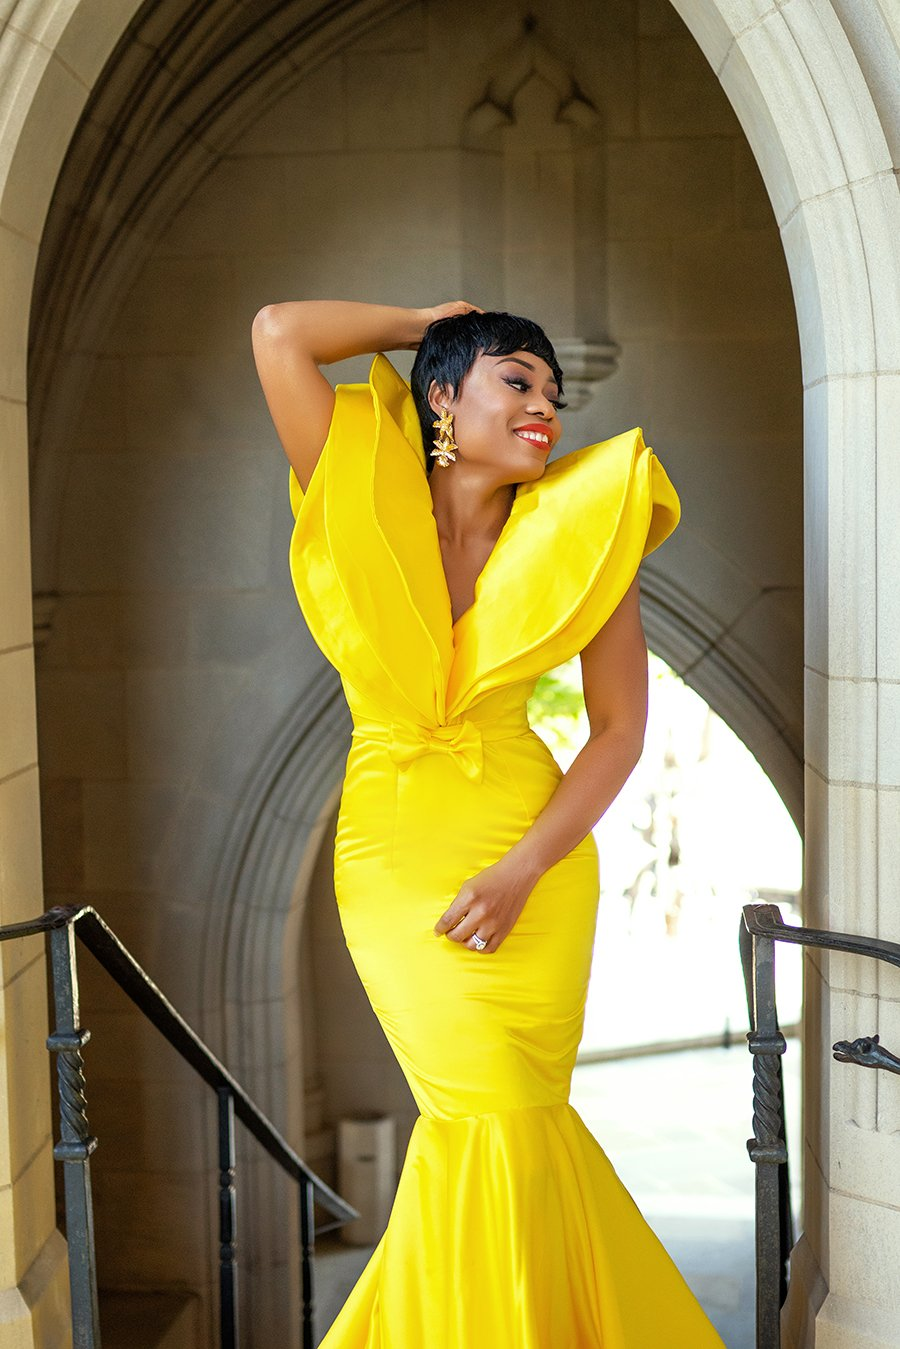 stella-adewunmi-of-jadore-fashion-blog-shares-yellow-ball-gown-celebrating-wedding